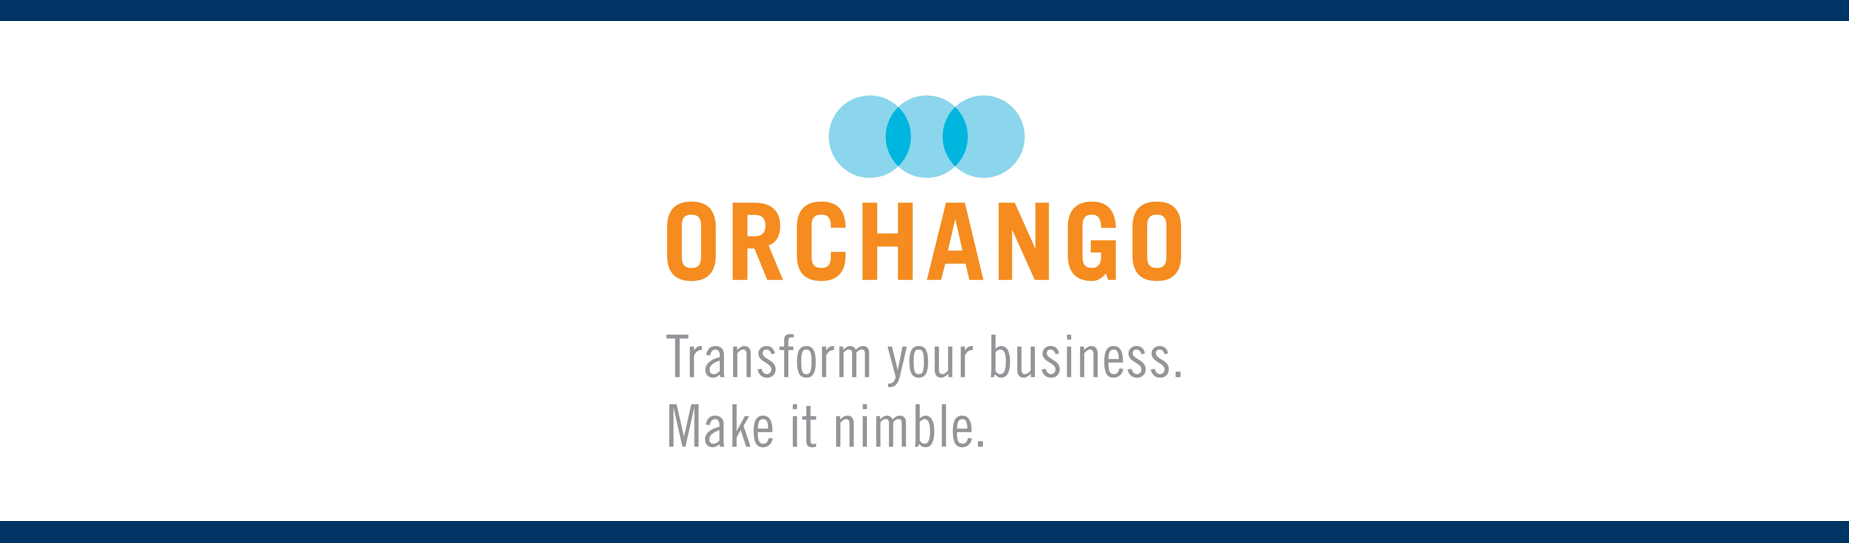 New ORCHANGO Tagline 2020 Revised